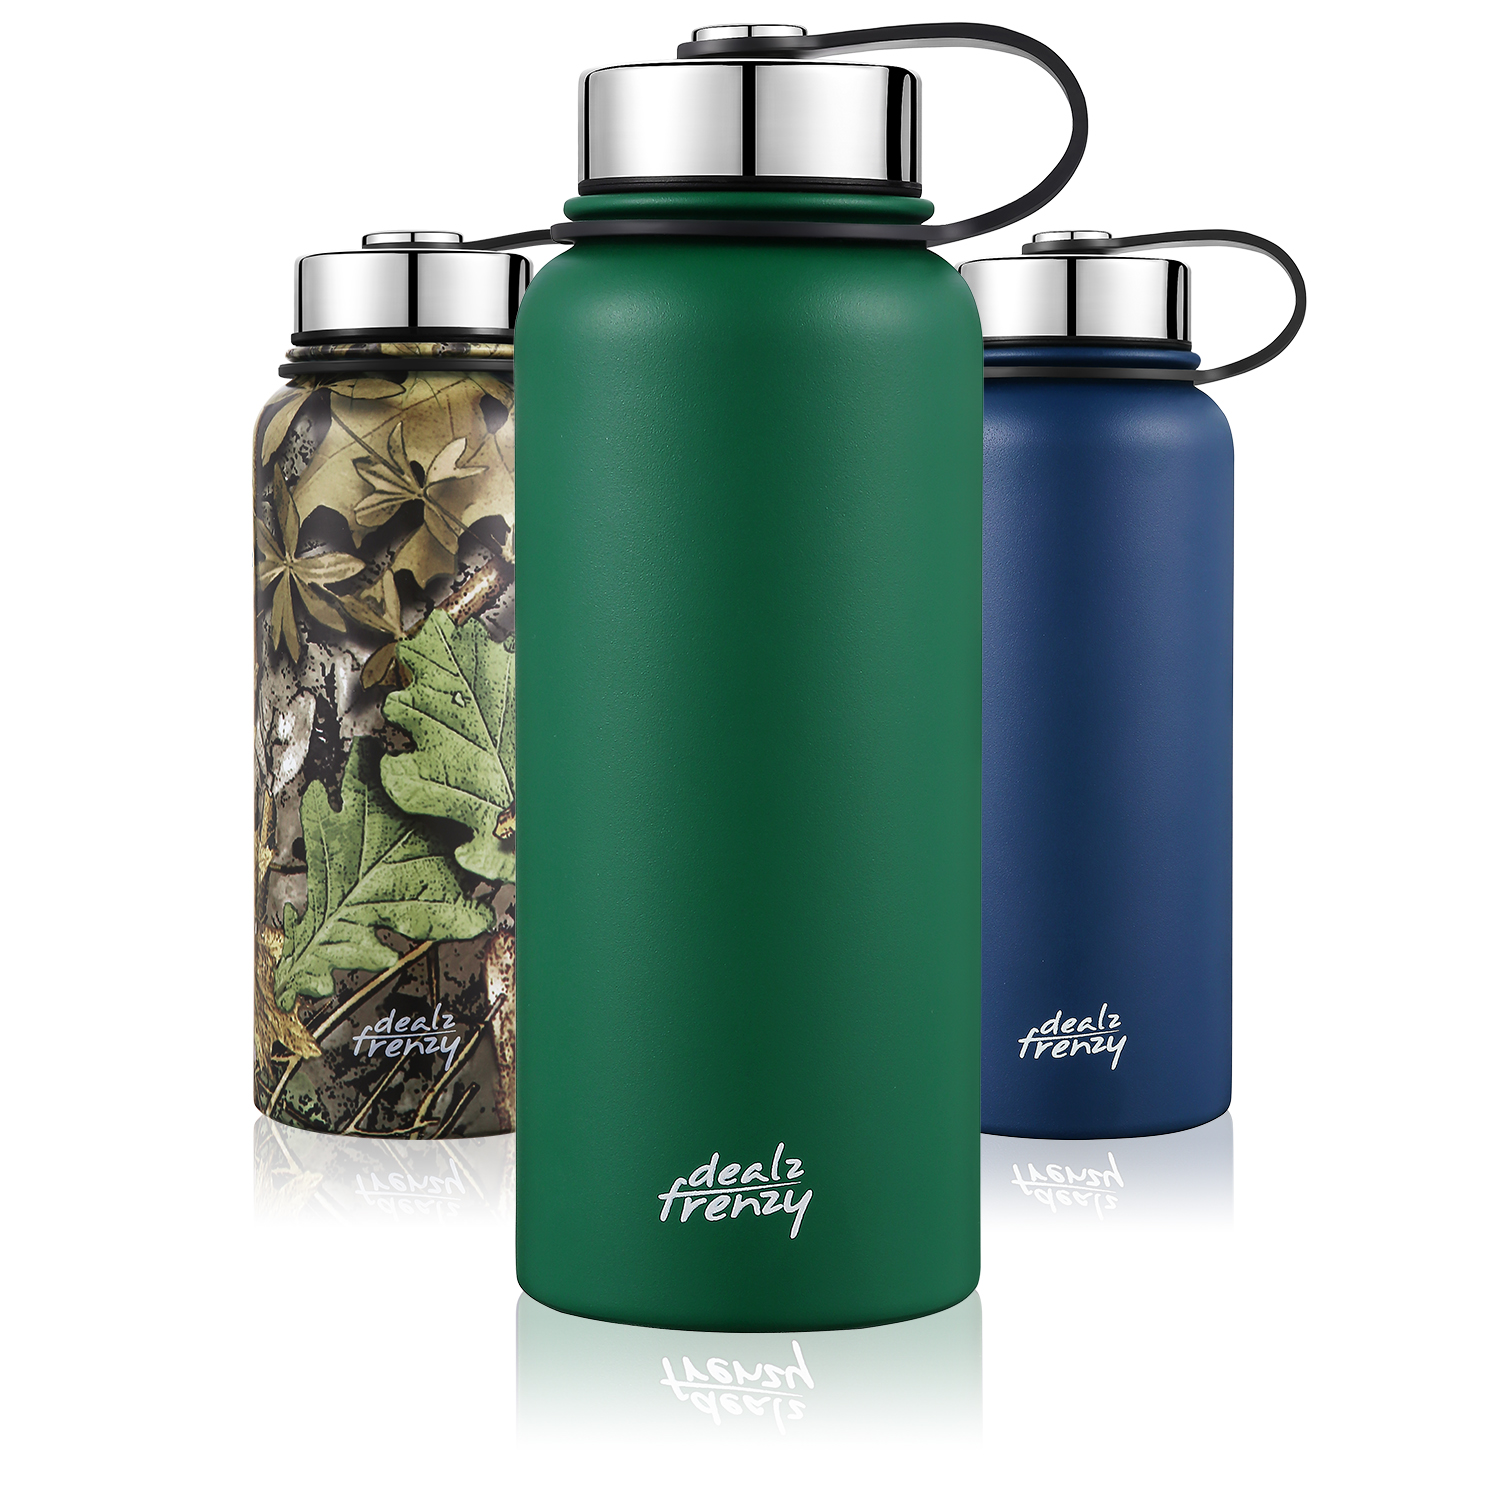 3a2e81b0434 Holiday deals! Double Wall Stainless Steel Wide Mouth Coffee Thermos Cups